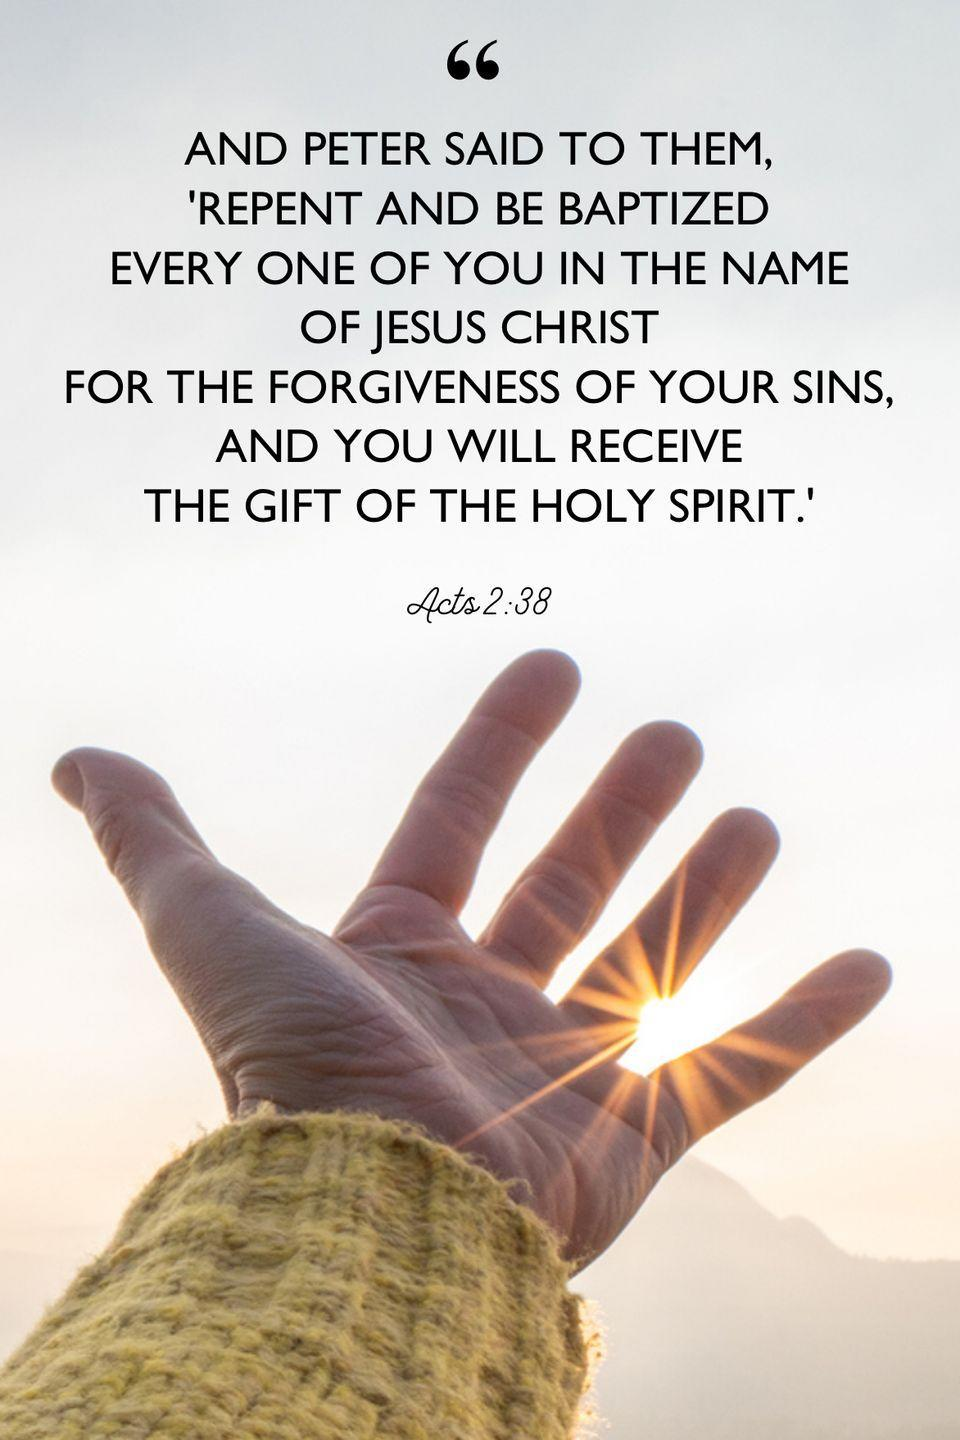 """<p>""""And Peter said to them, 'Repent and be baptized every one of you in the name of Jesus Christ for the forgiveness of your sins, and you will receive the gift of the Holy Spirit.'""""</p>"""